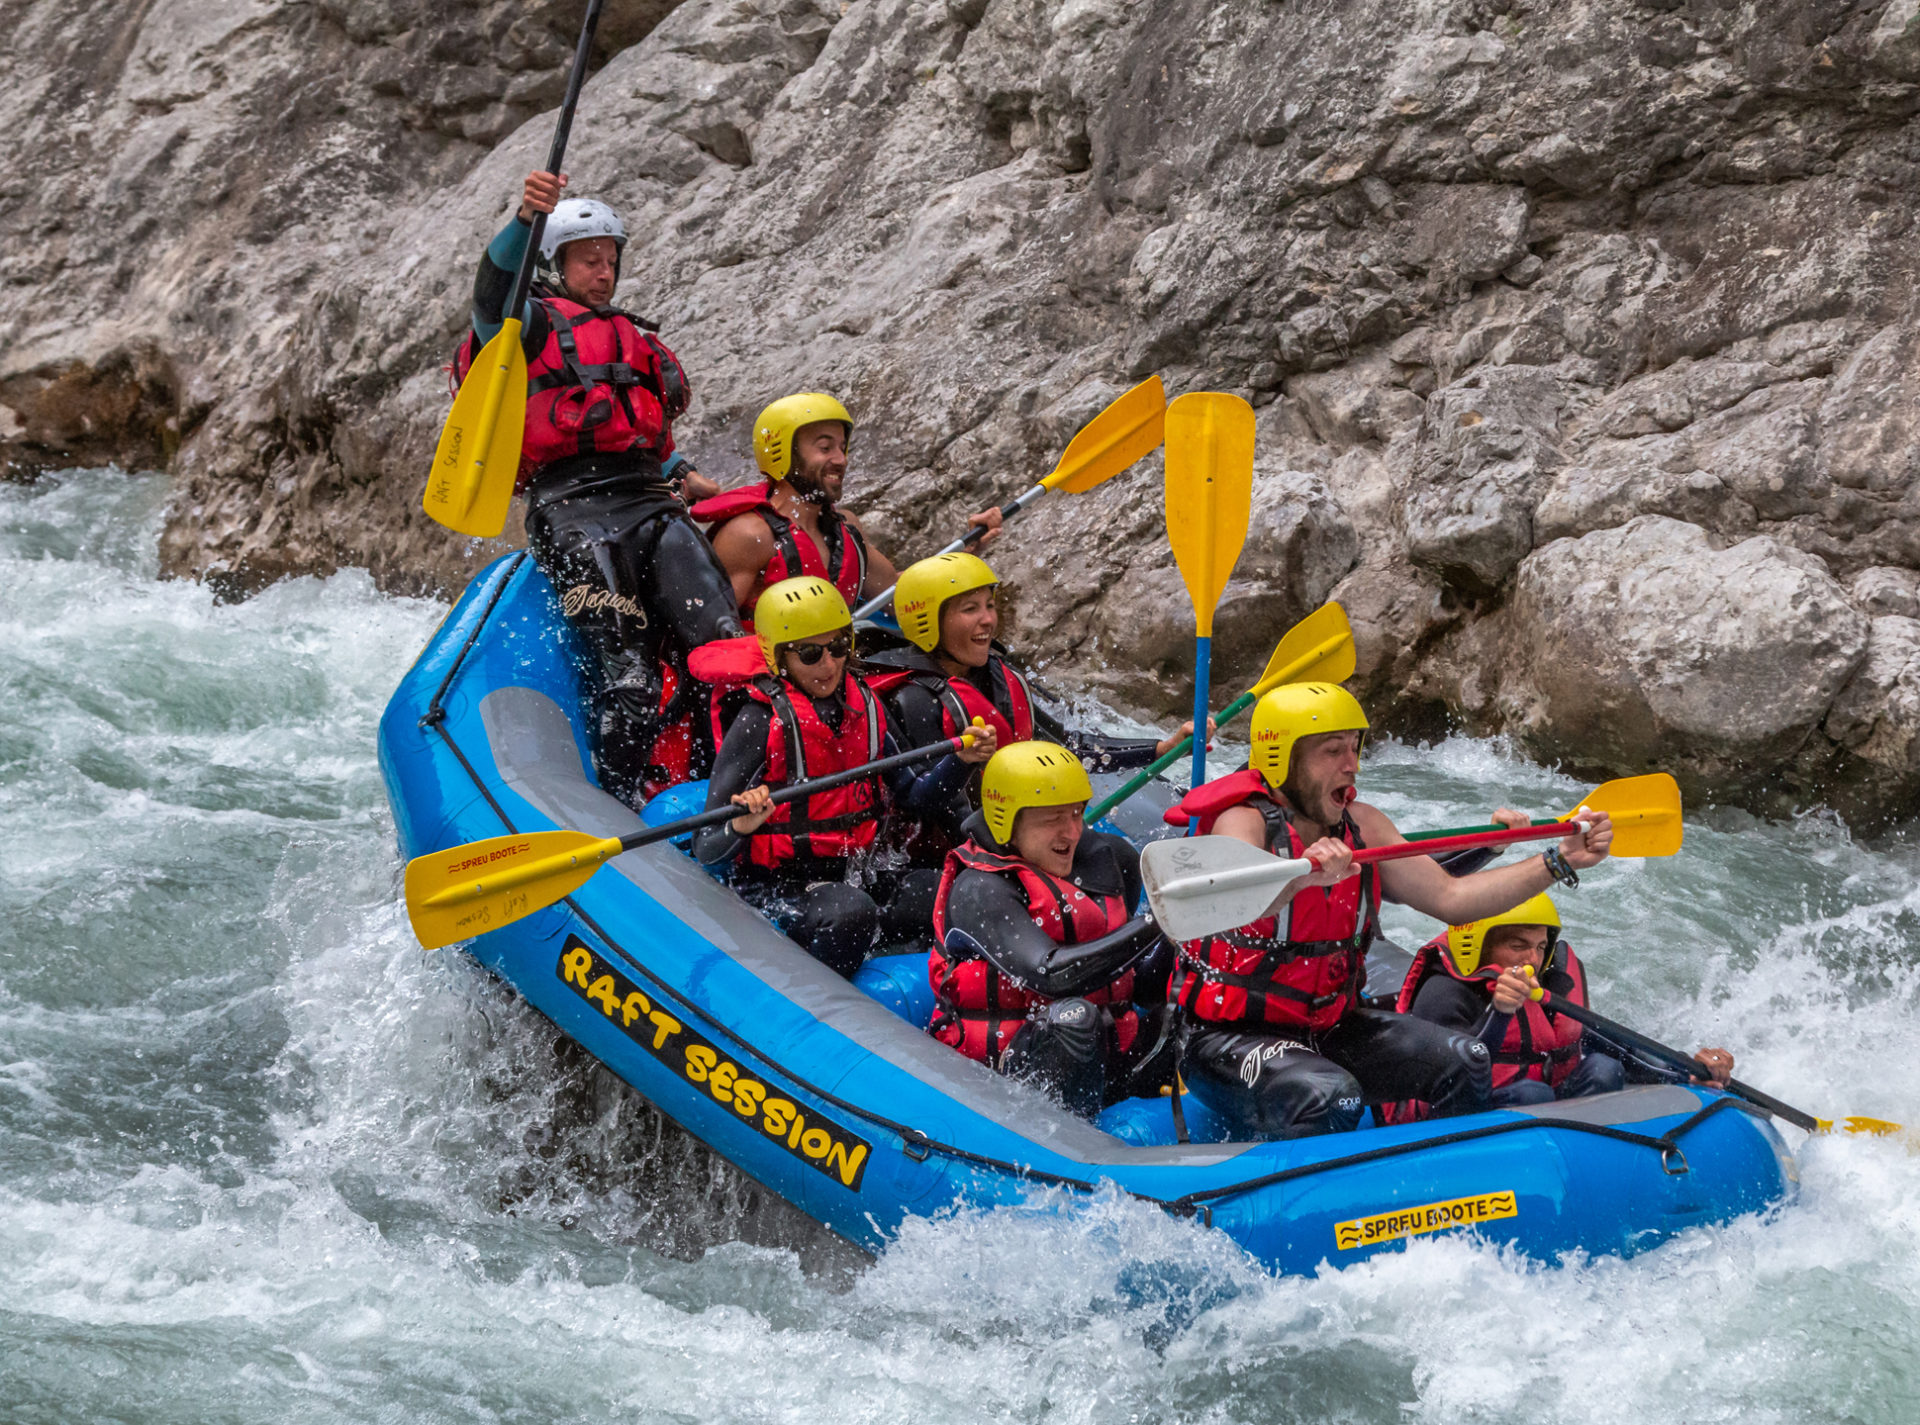 Looking for an <strong>intense weekend</strong> in the Verdon?